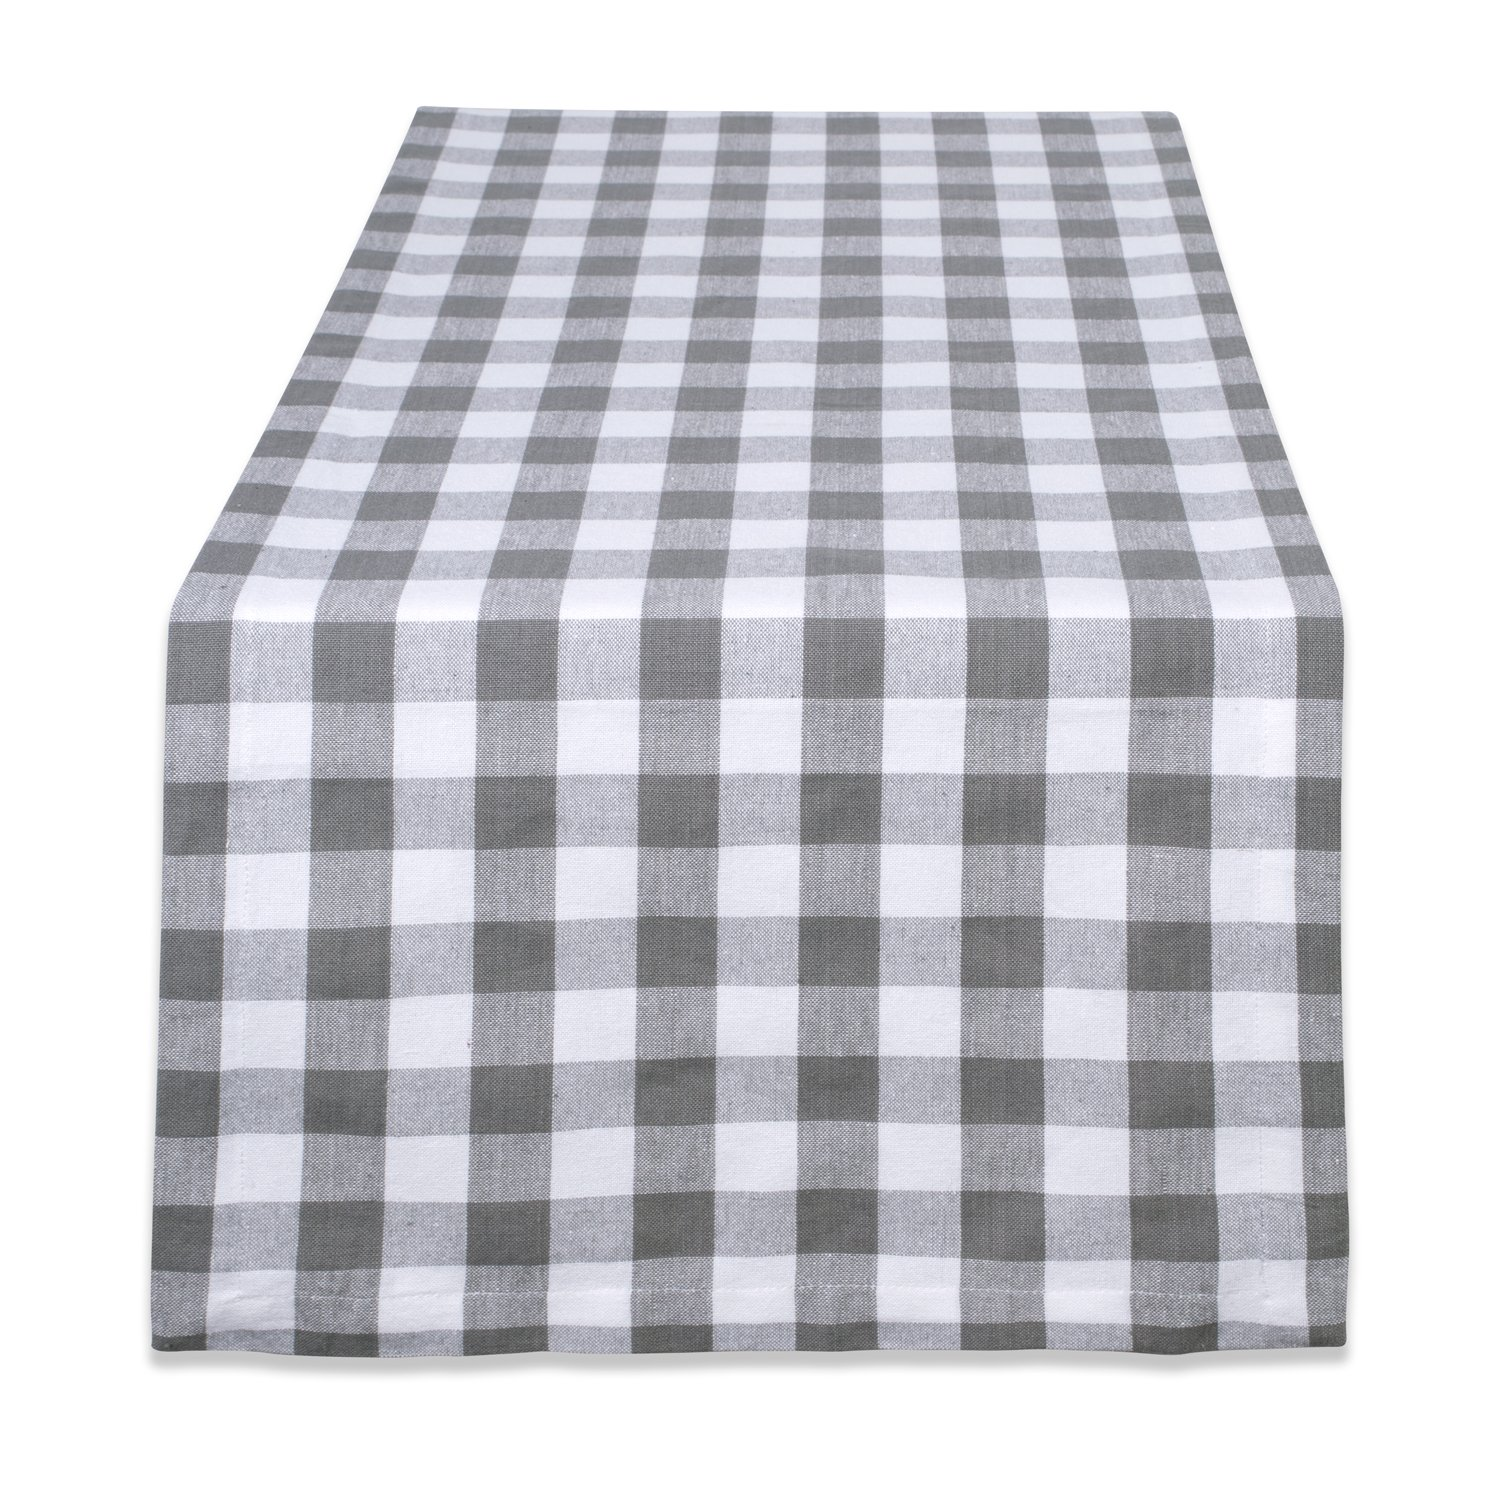 DII 100% Cotton, Machine Washable, Dinner, Everyday Use Table Runner, 14x72, Gray & White Check